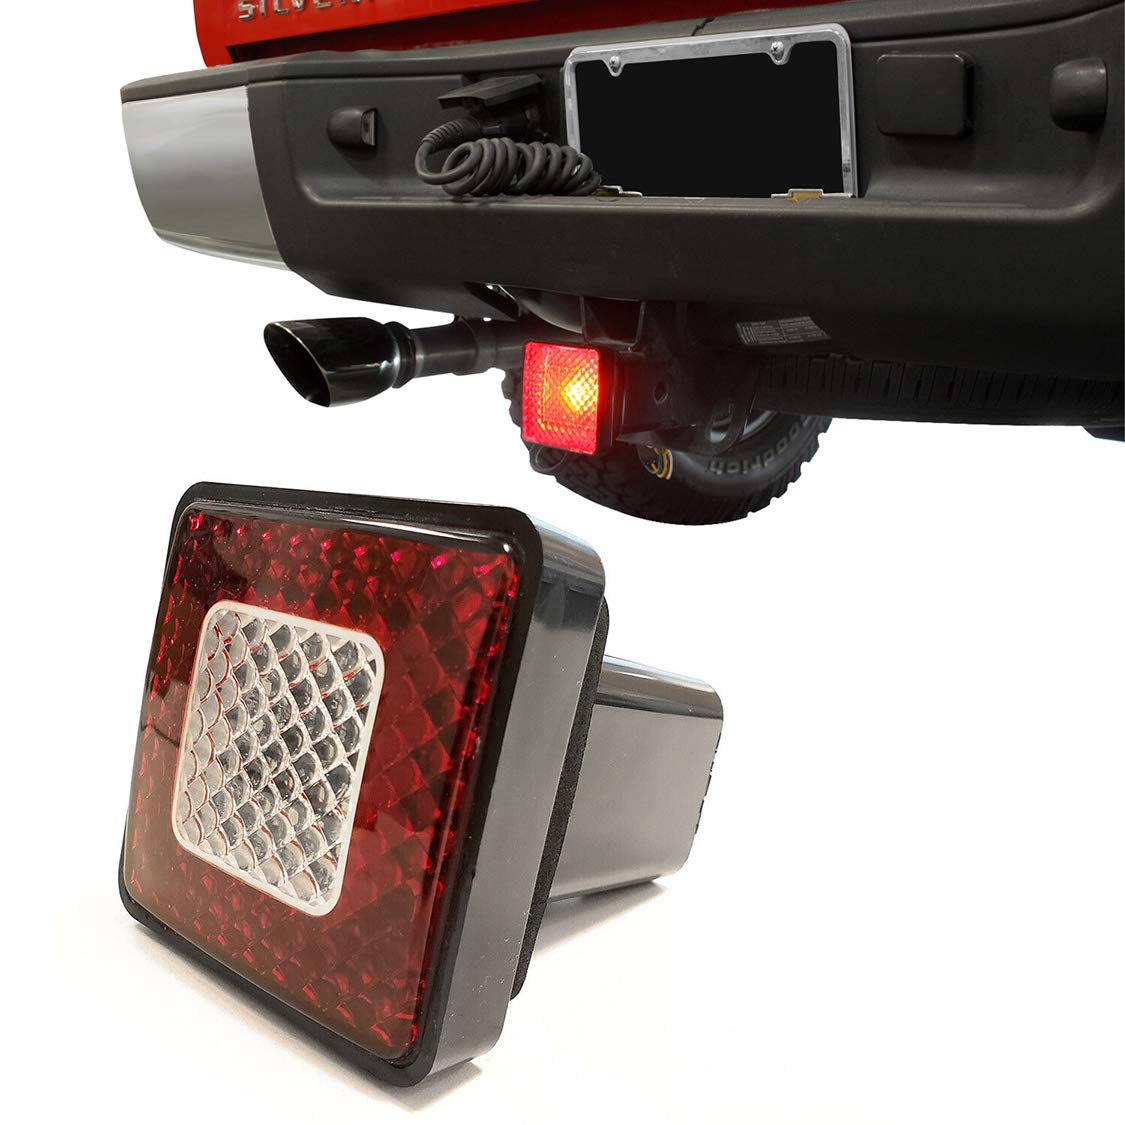 TC Sportline 3'' 80 LED Brake Driving Lamp with Reverse Light, Truck SUV Trailer Towing Hitch Receiver Cover for 2'' Class III Hitch by TC Sportline